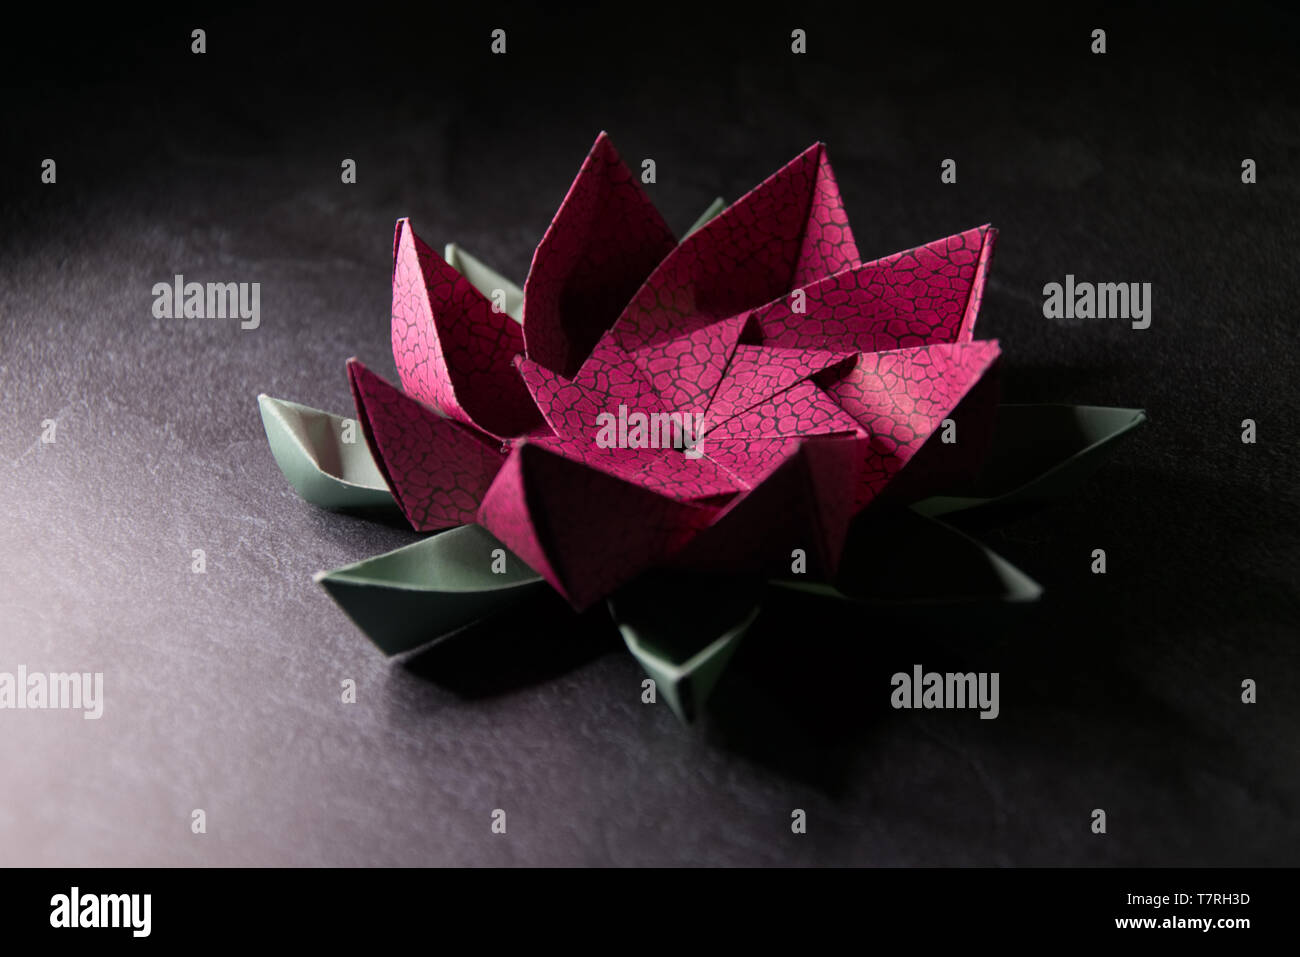 Pink Origami Lotus Flower - Ars and Crafts, Paper Art on Textured Stone Backgrund - Stock Image